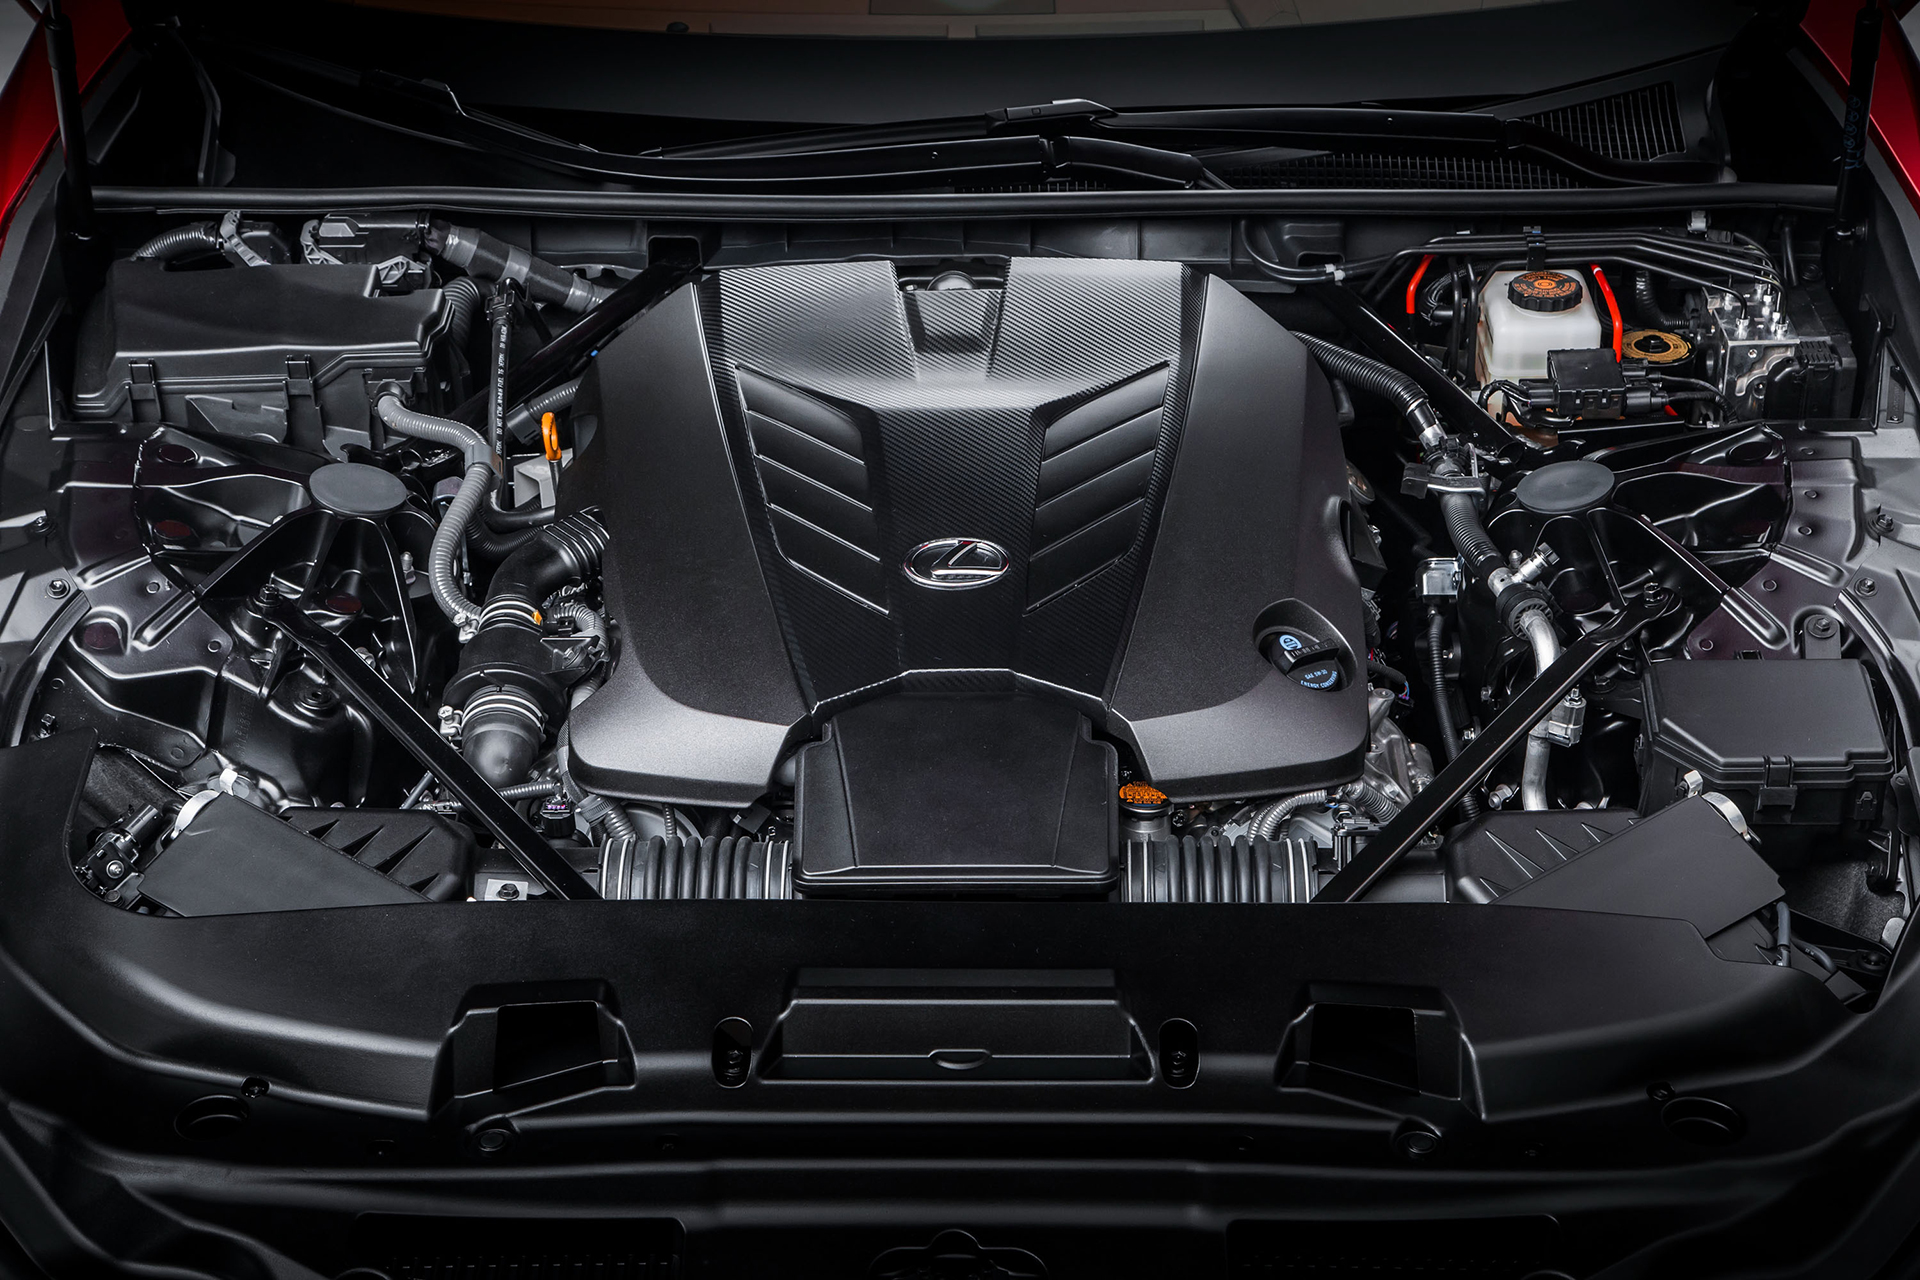 Lexus LC 500 - 2016 - under the hood / sous le capot